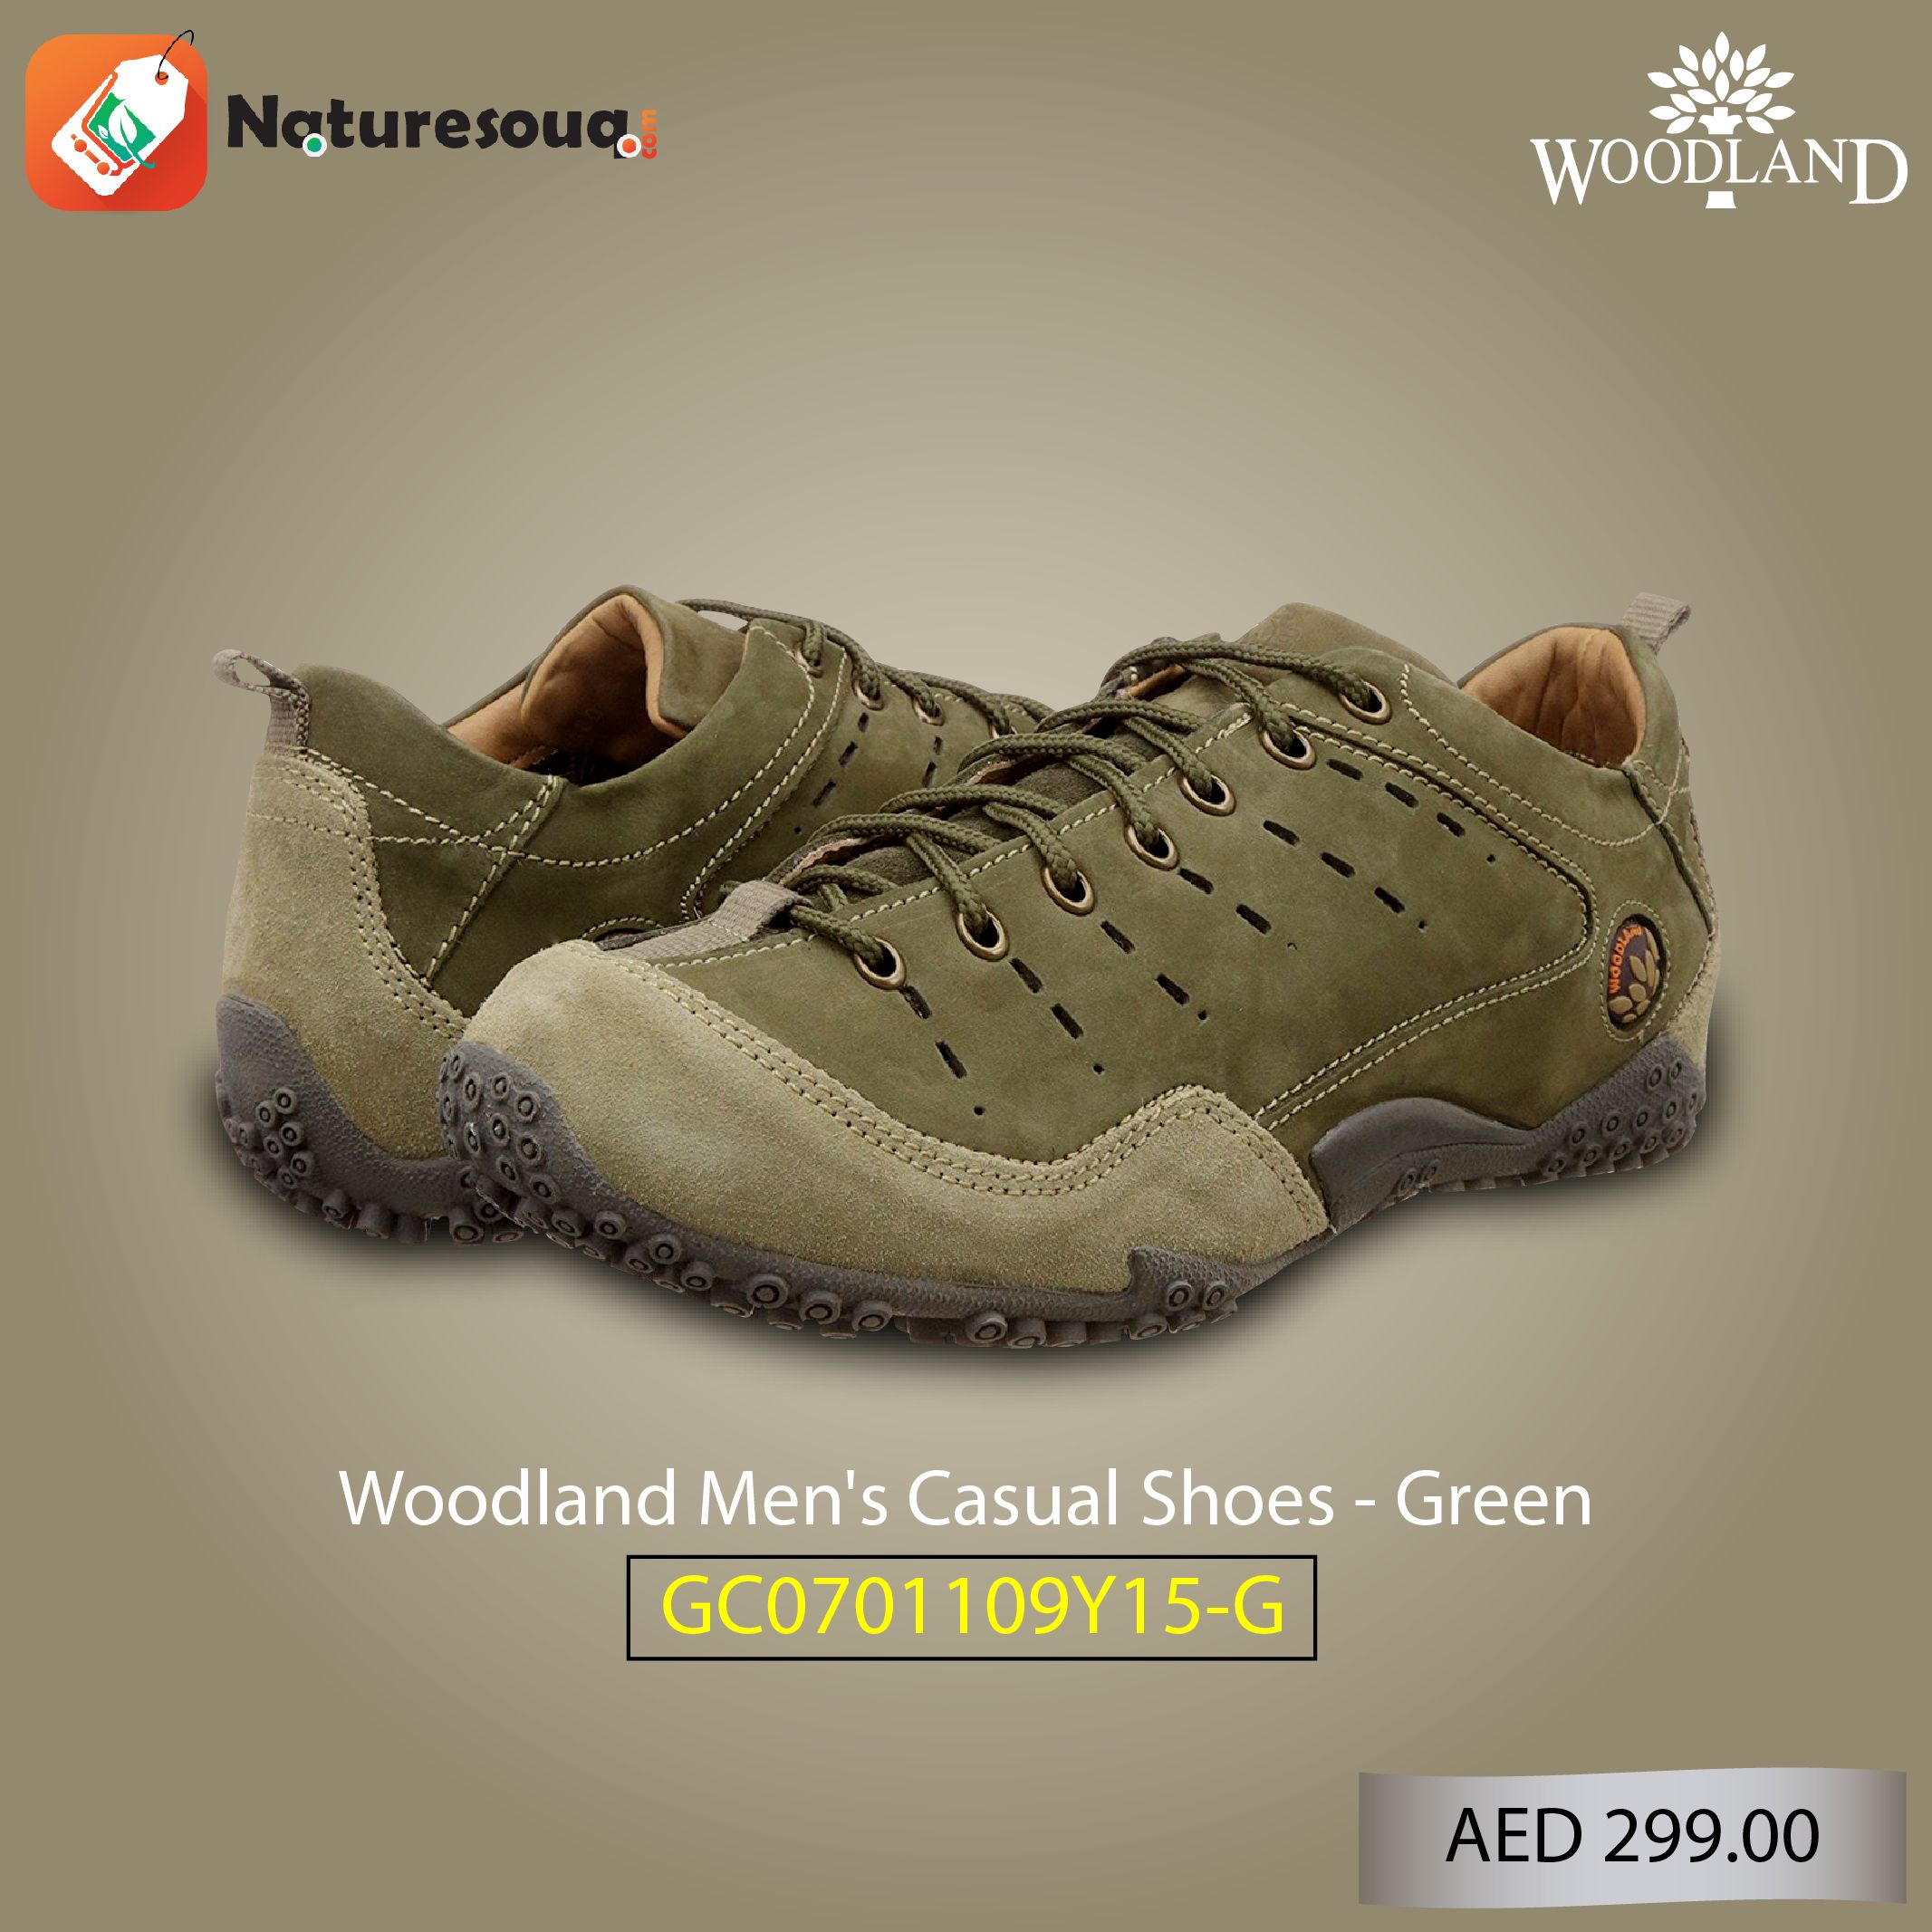 Woodland shoes, Casual shoes, Mens